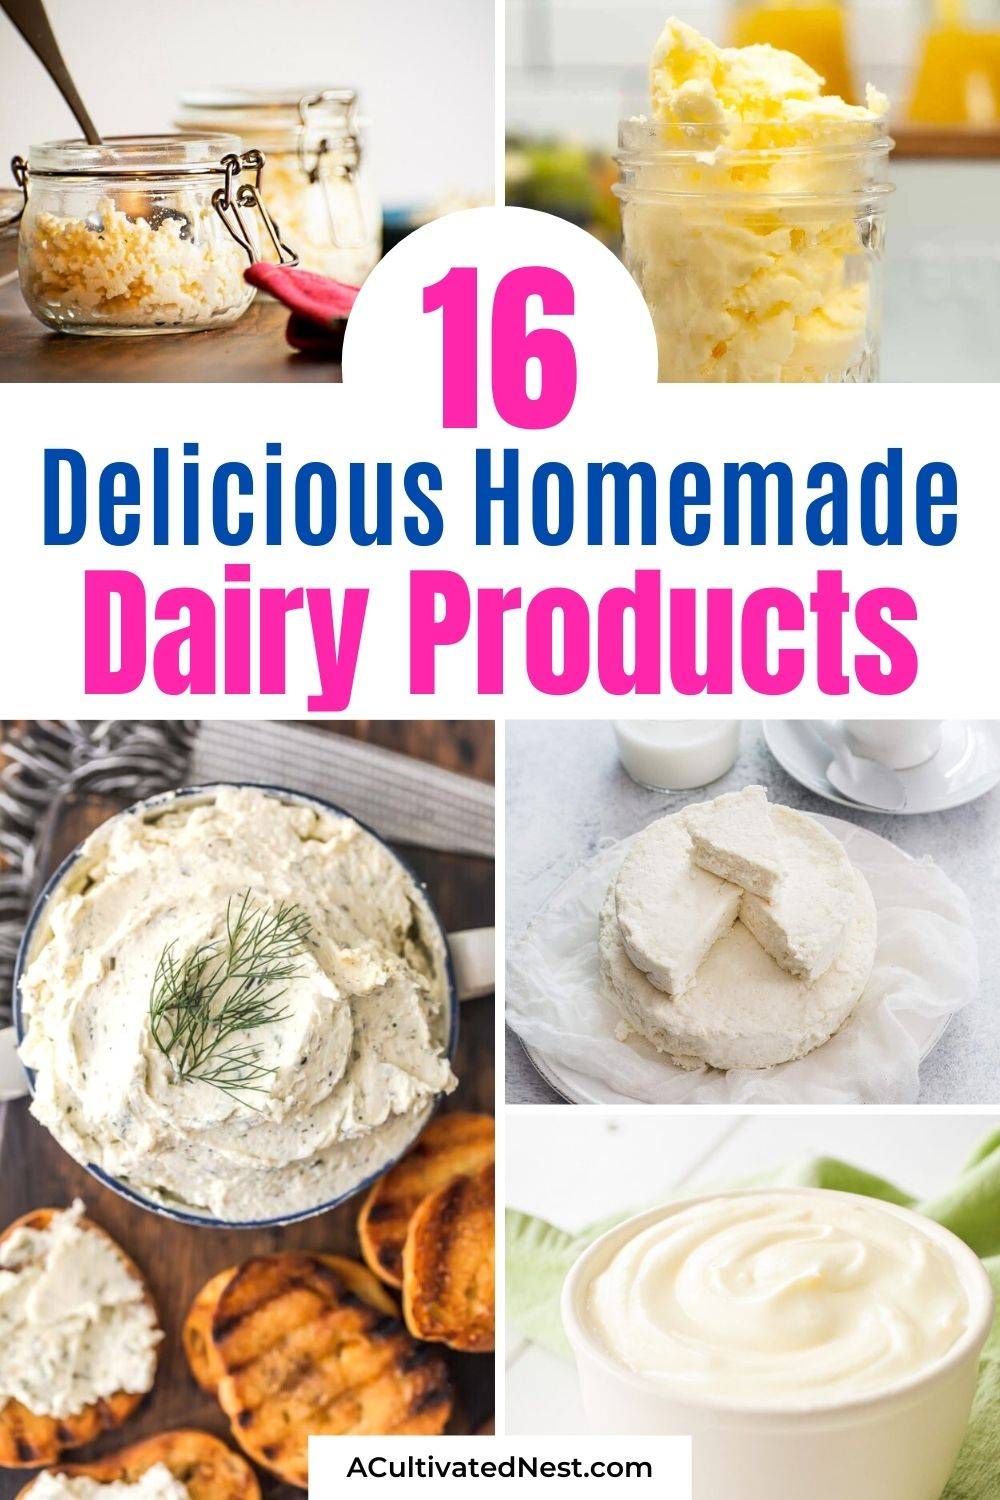 16 Delicious Homemade Dairy Products- A frugal way to save money on dairy products and know what's in your food is to make some of these homemade dairy products! They are simple, delicious, and frugal recipes that the whole family will enjoy! | homemade cheese, #homemadeFood #dairyProducts #dairyRecipes #homemadeButter #ACultivatedNest